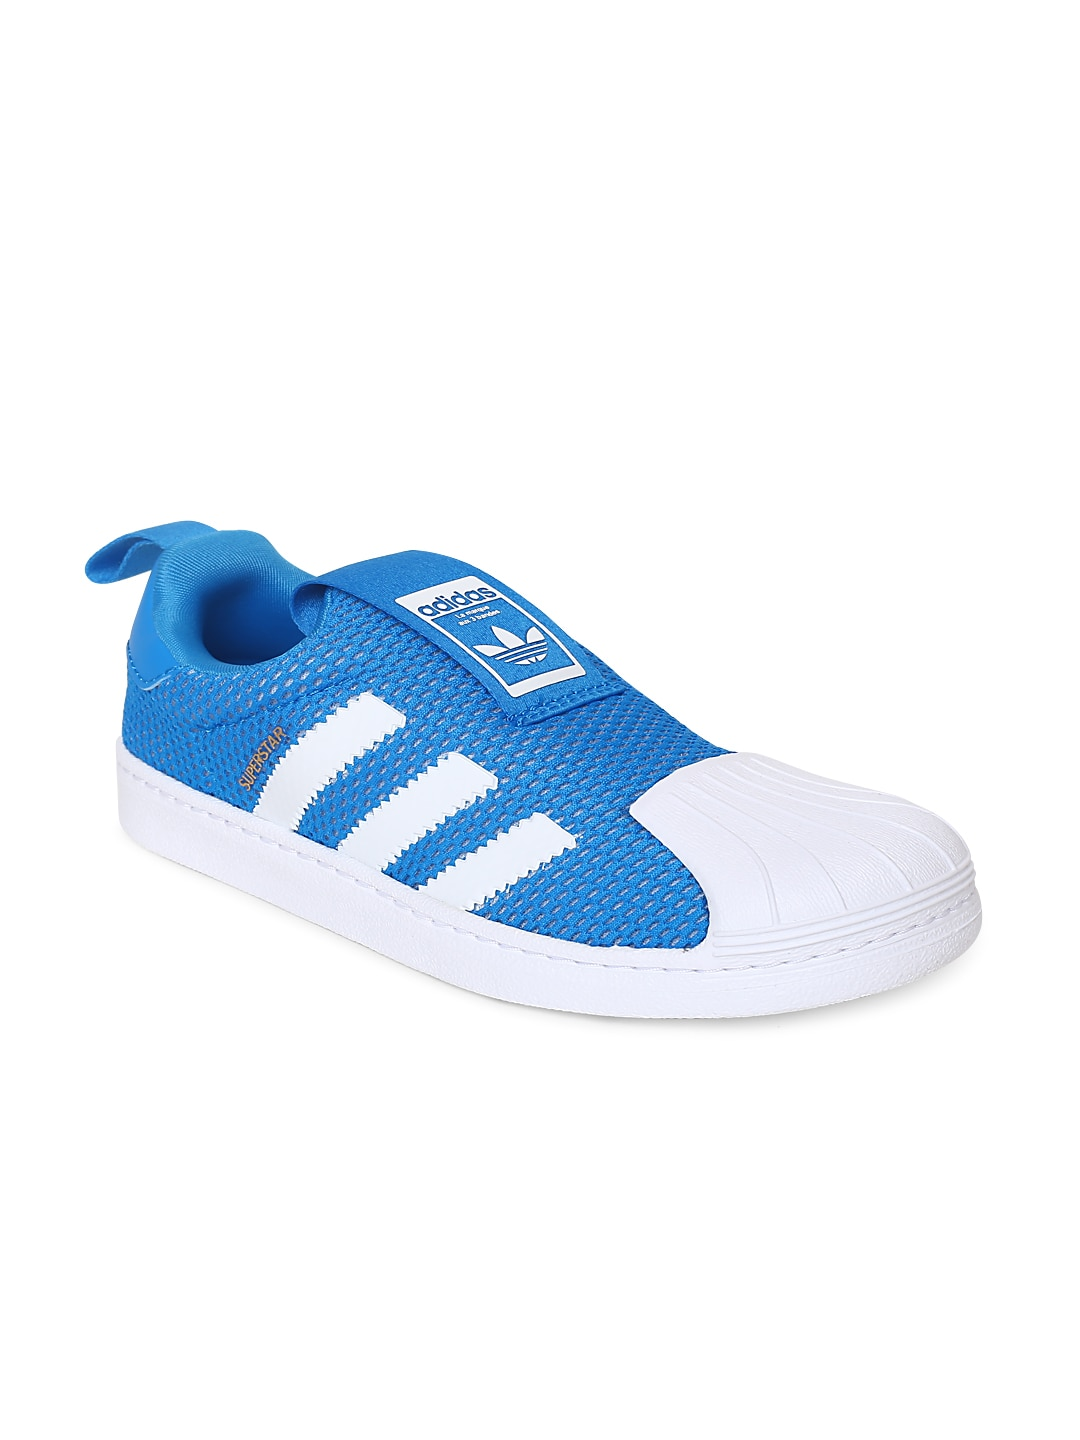 reputable site c1b2b b73d3 Adidas Boys Shoes - Buy Adidas Boys Shoes online in India